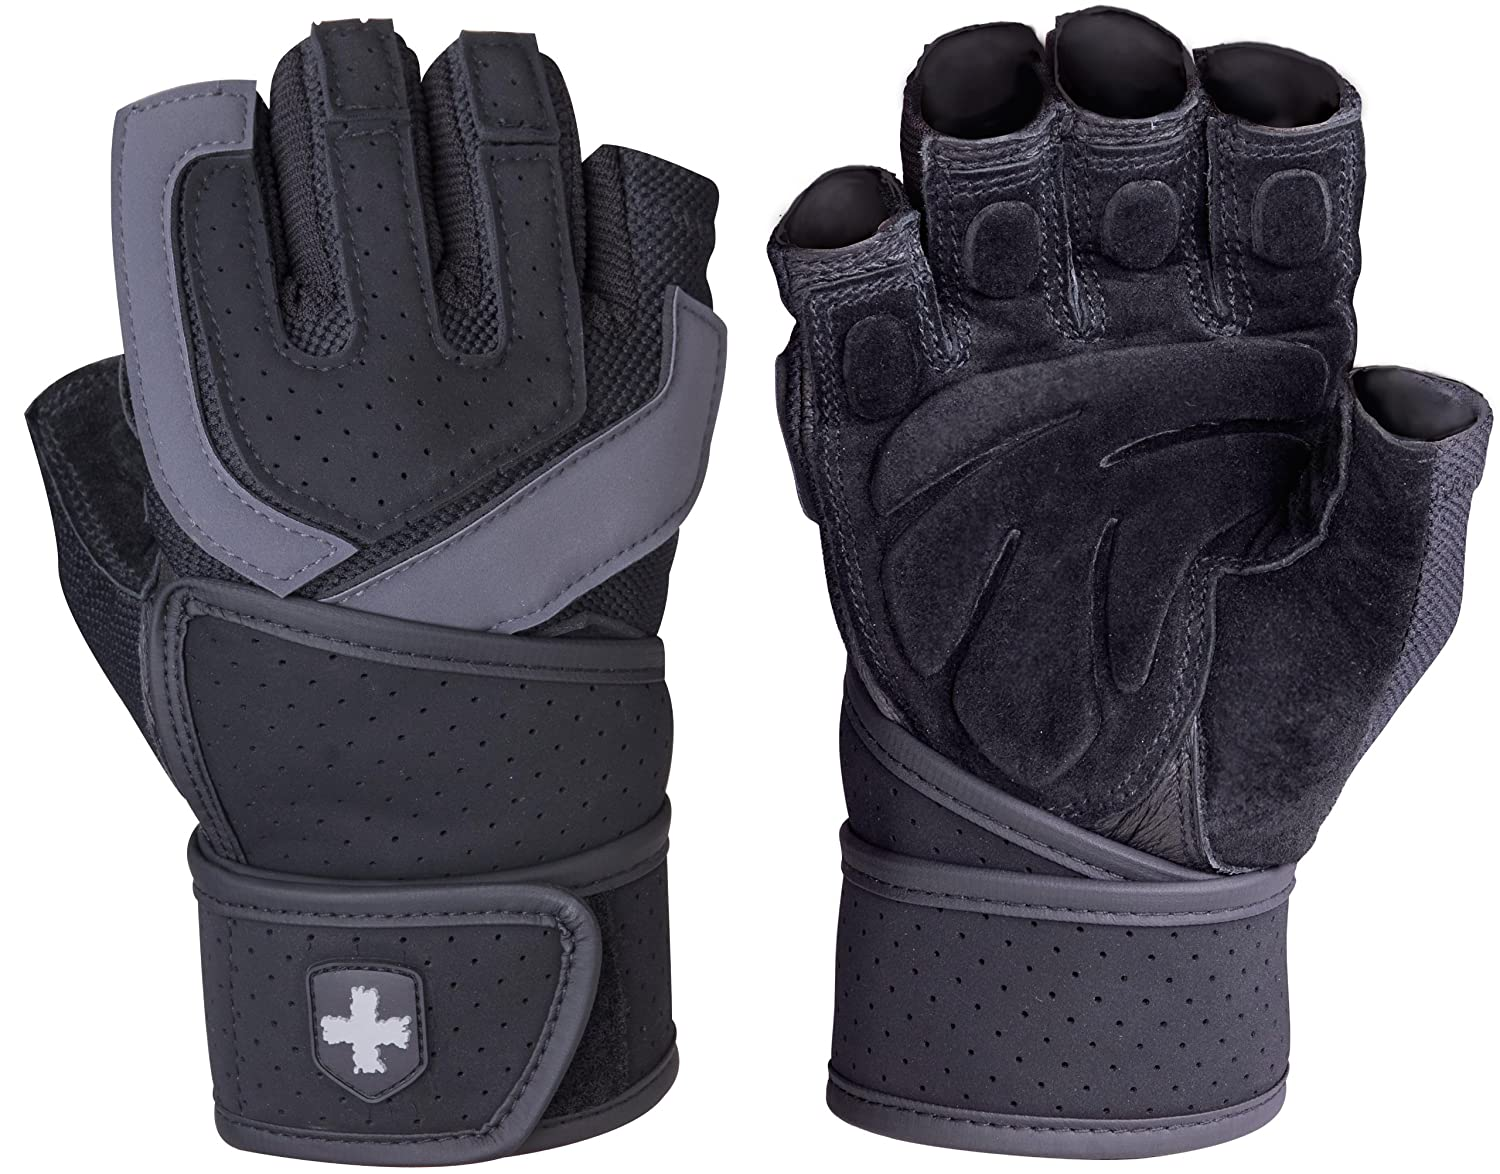 Harbinger 1250 Training Grip WristWrap Glove,Black/Grey перчатки сноубордические marmot lifty glove black slate grey